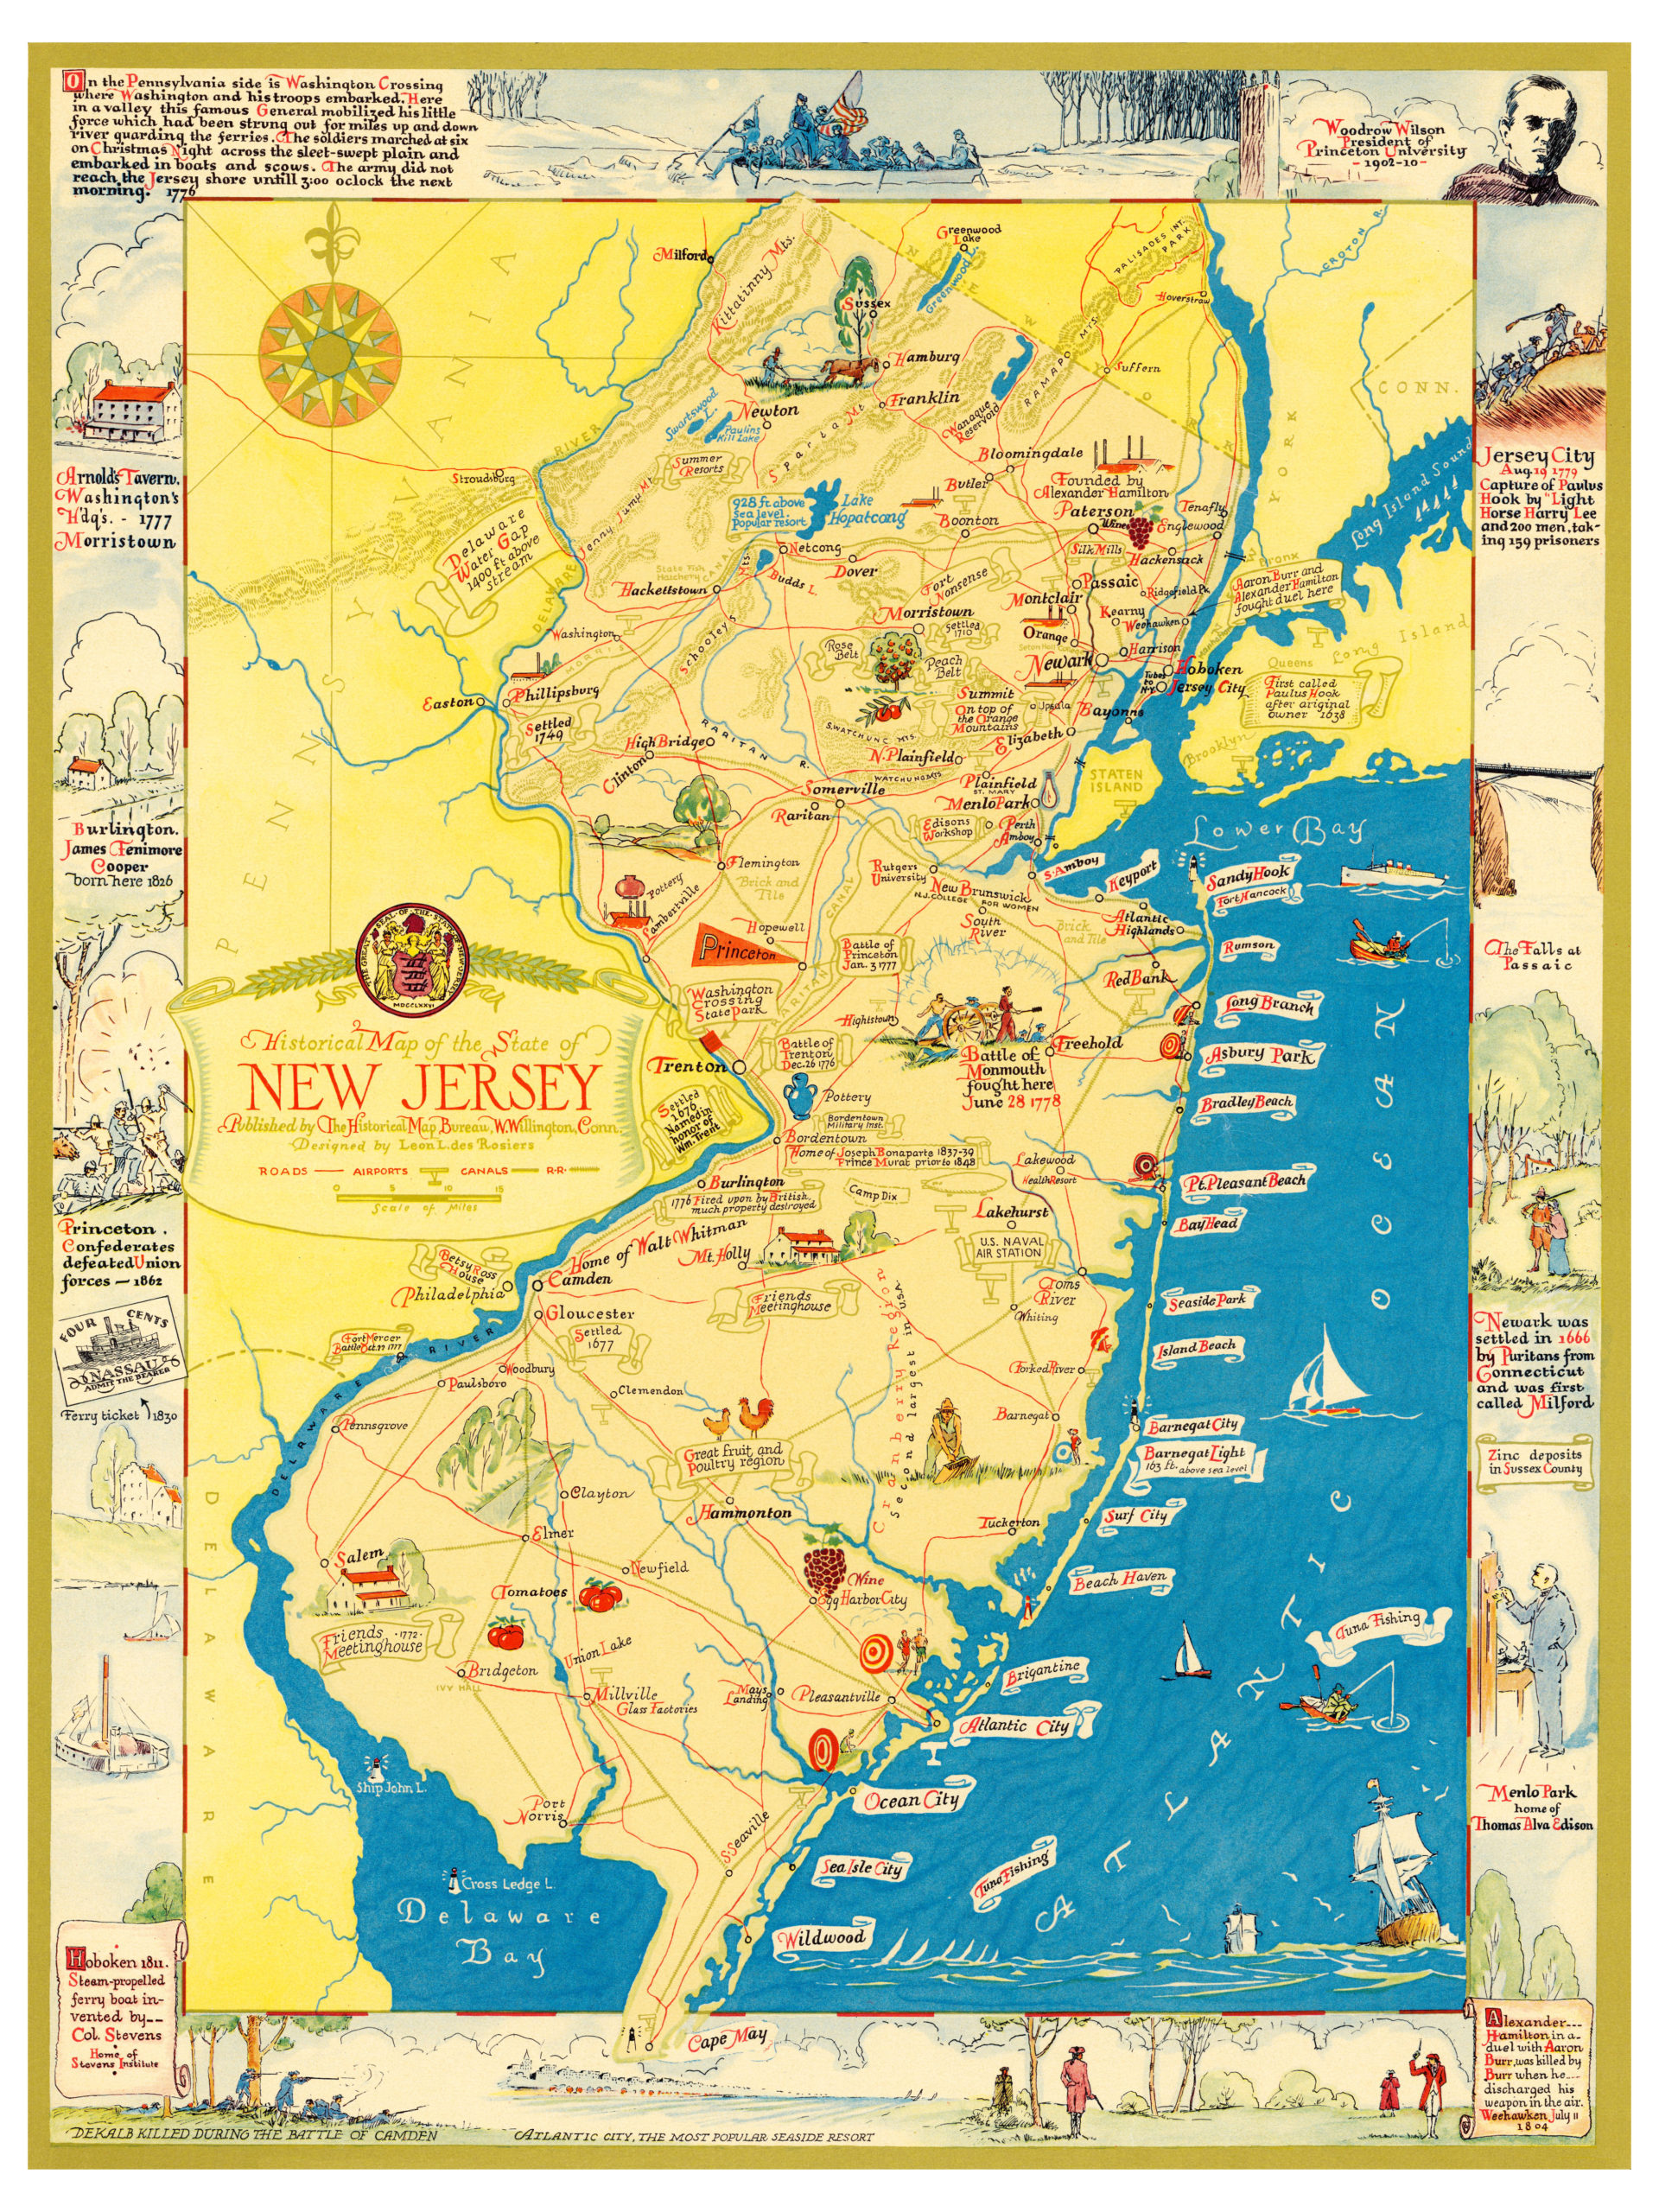 Amazing Map Of New Jersey Filled With Historical Trivia KNOWOL - Old map reproductions